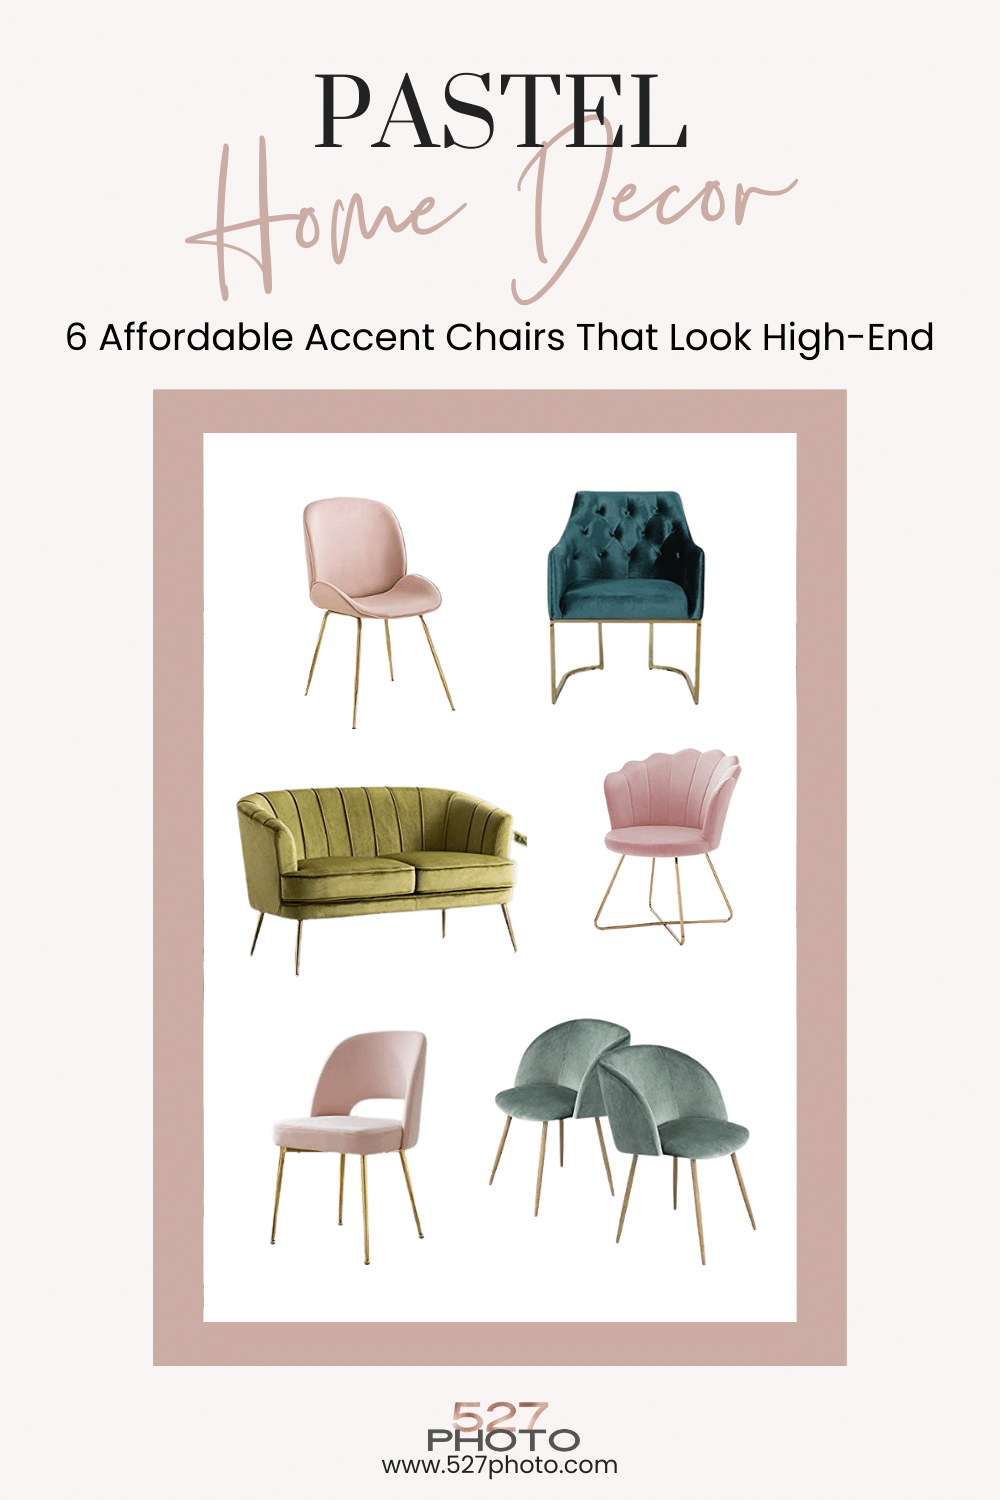 6 Affordable Pastel Accent Chairs That Look High End Home Decor And More 527 Photo Travel Home Decor Blog Blog